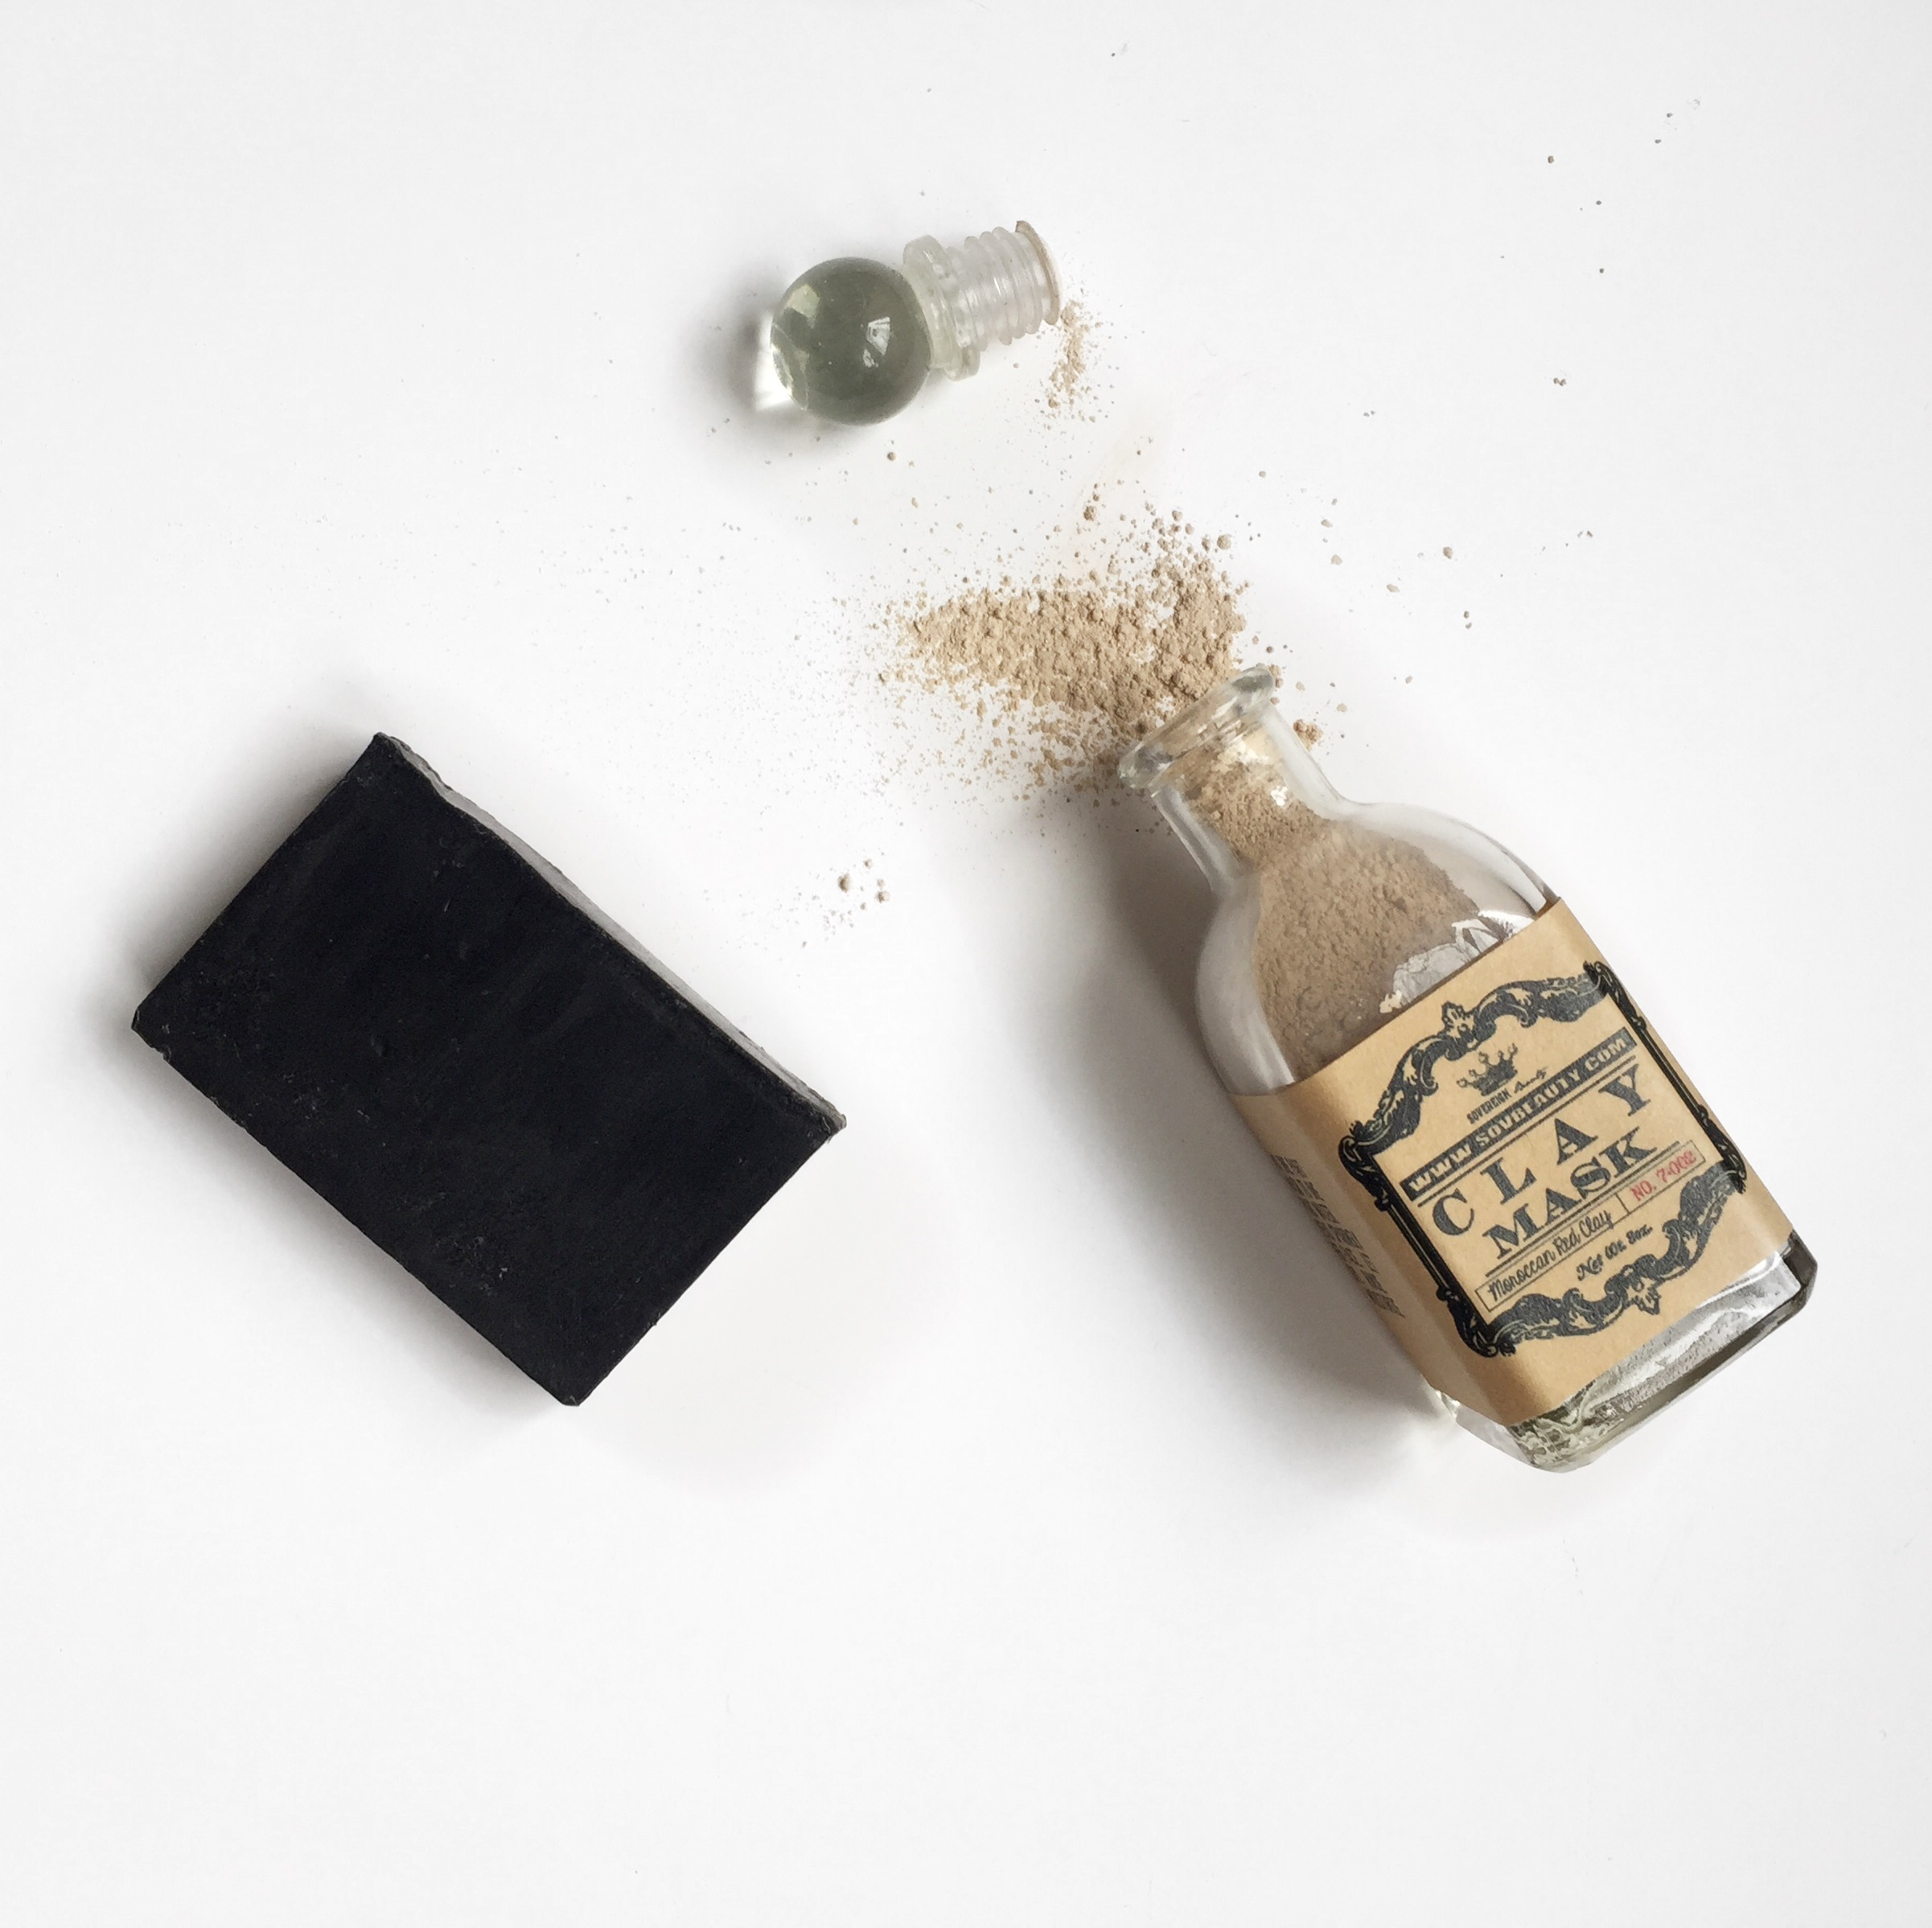 Charcoal Soap & Clay Mask available online at  thetoppingtree.com  or in-store!